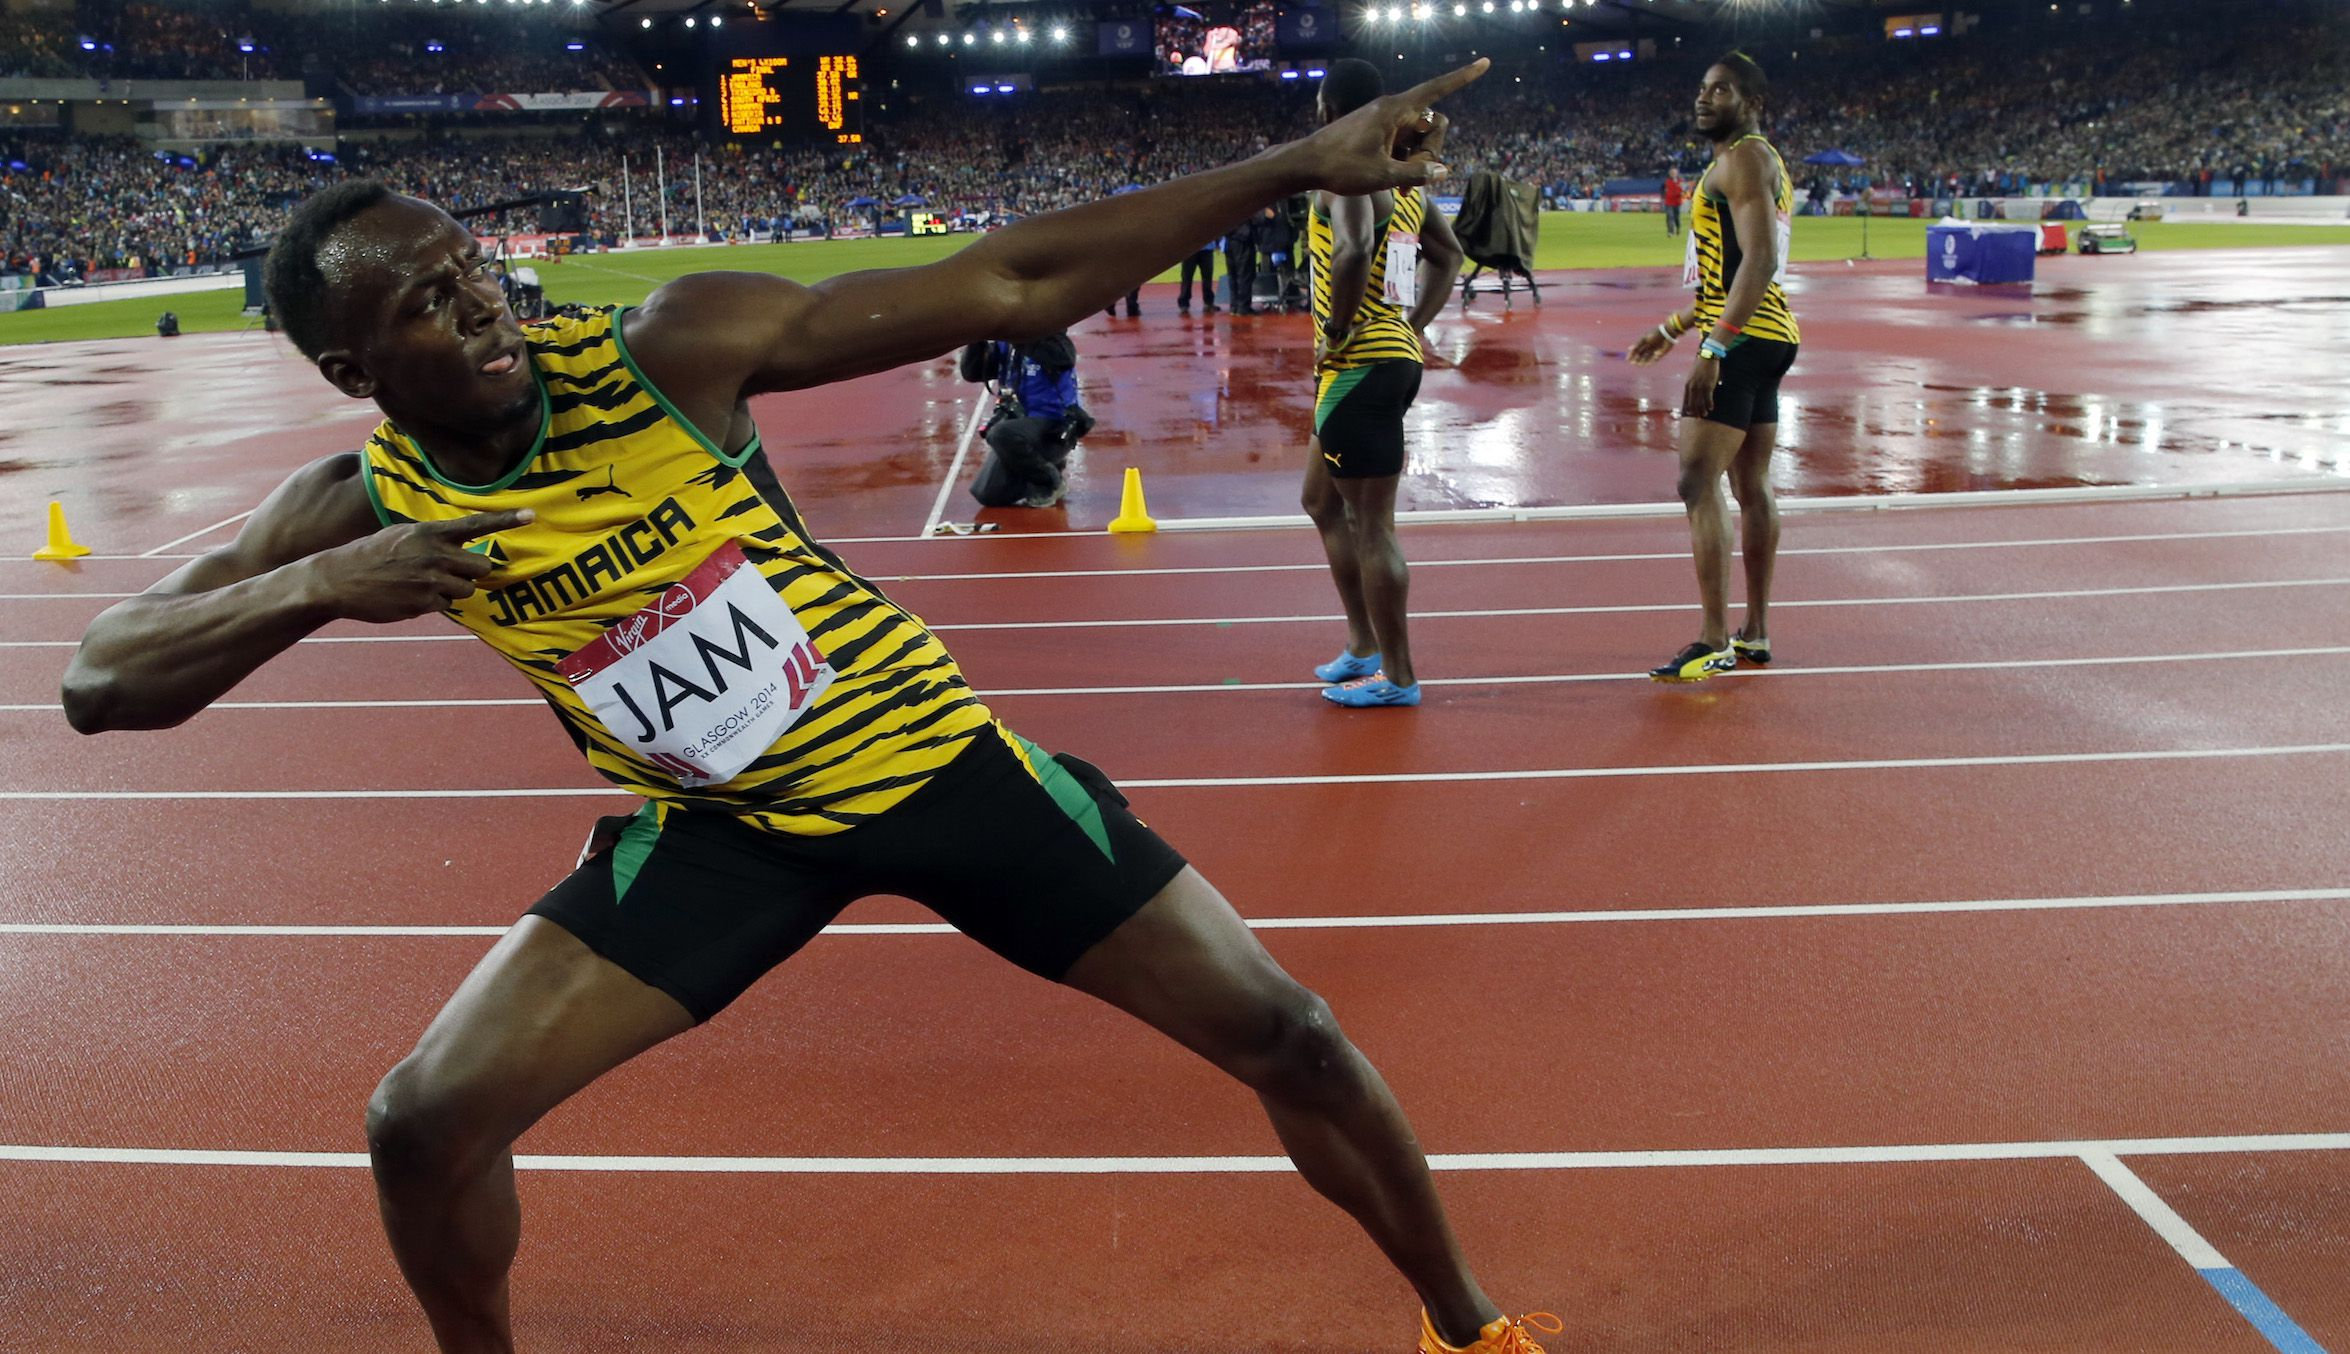 Jamaica's Usain Bolt poses after Jamaica won the men's 4x100m relay final at the 2014 Commonwealth Games in Glasgow, Scotland, August 2, 2014.                  REUTERS/Suzanne Plunkett (BRITAIN  - Tags: SPORT ATHLETICS)   - RTR41142